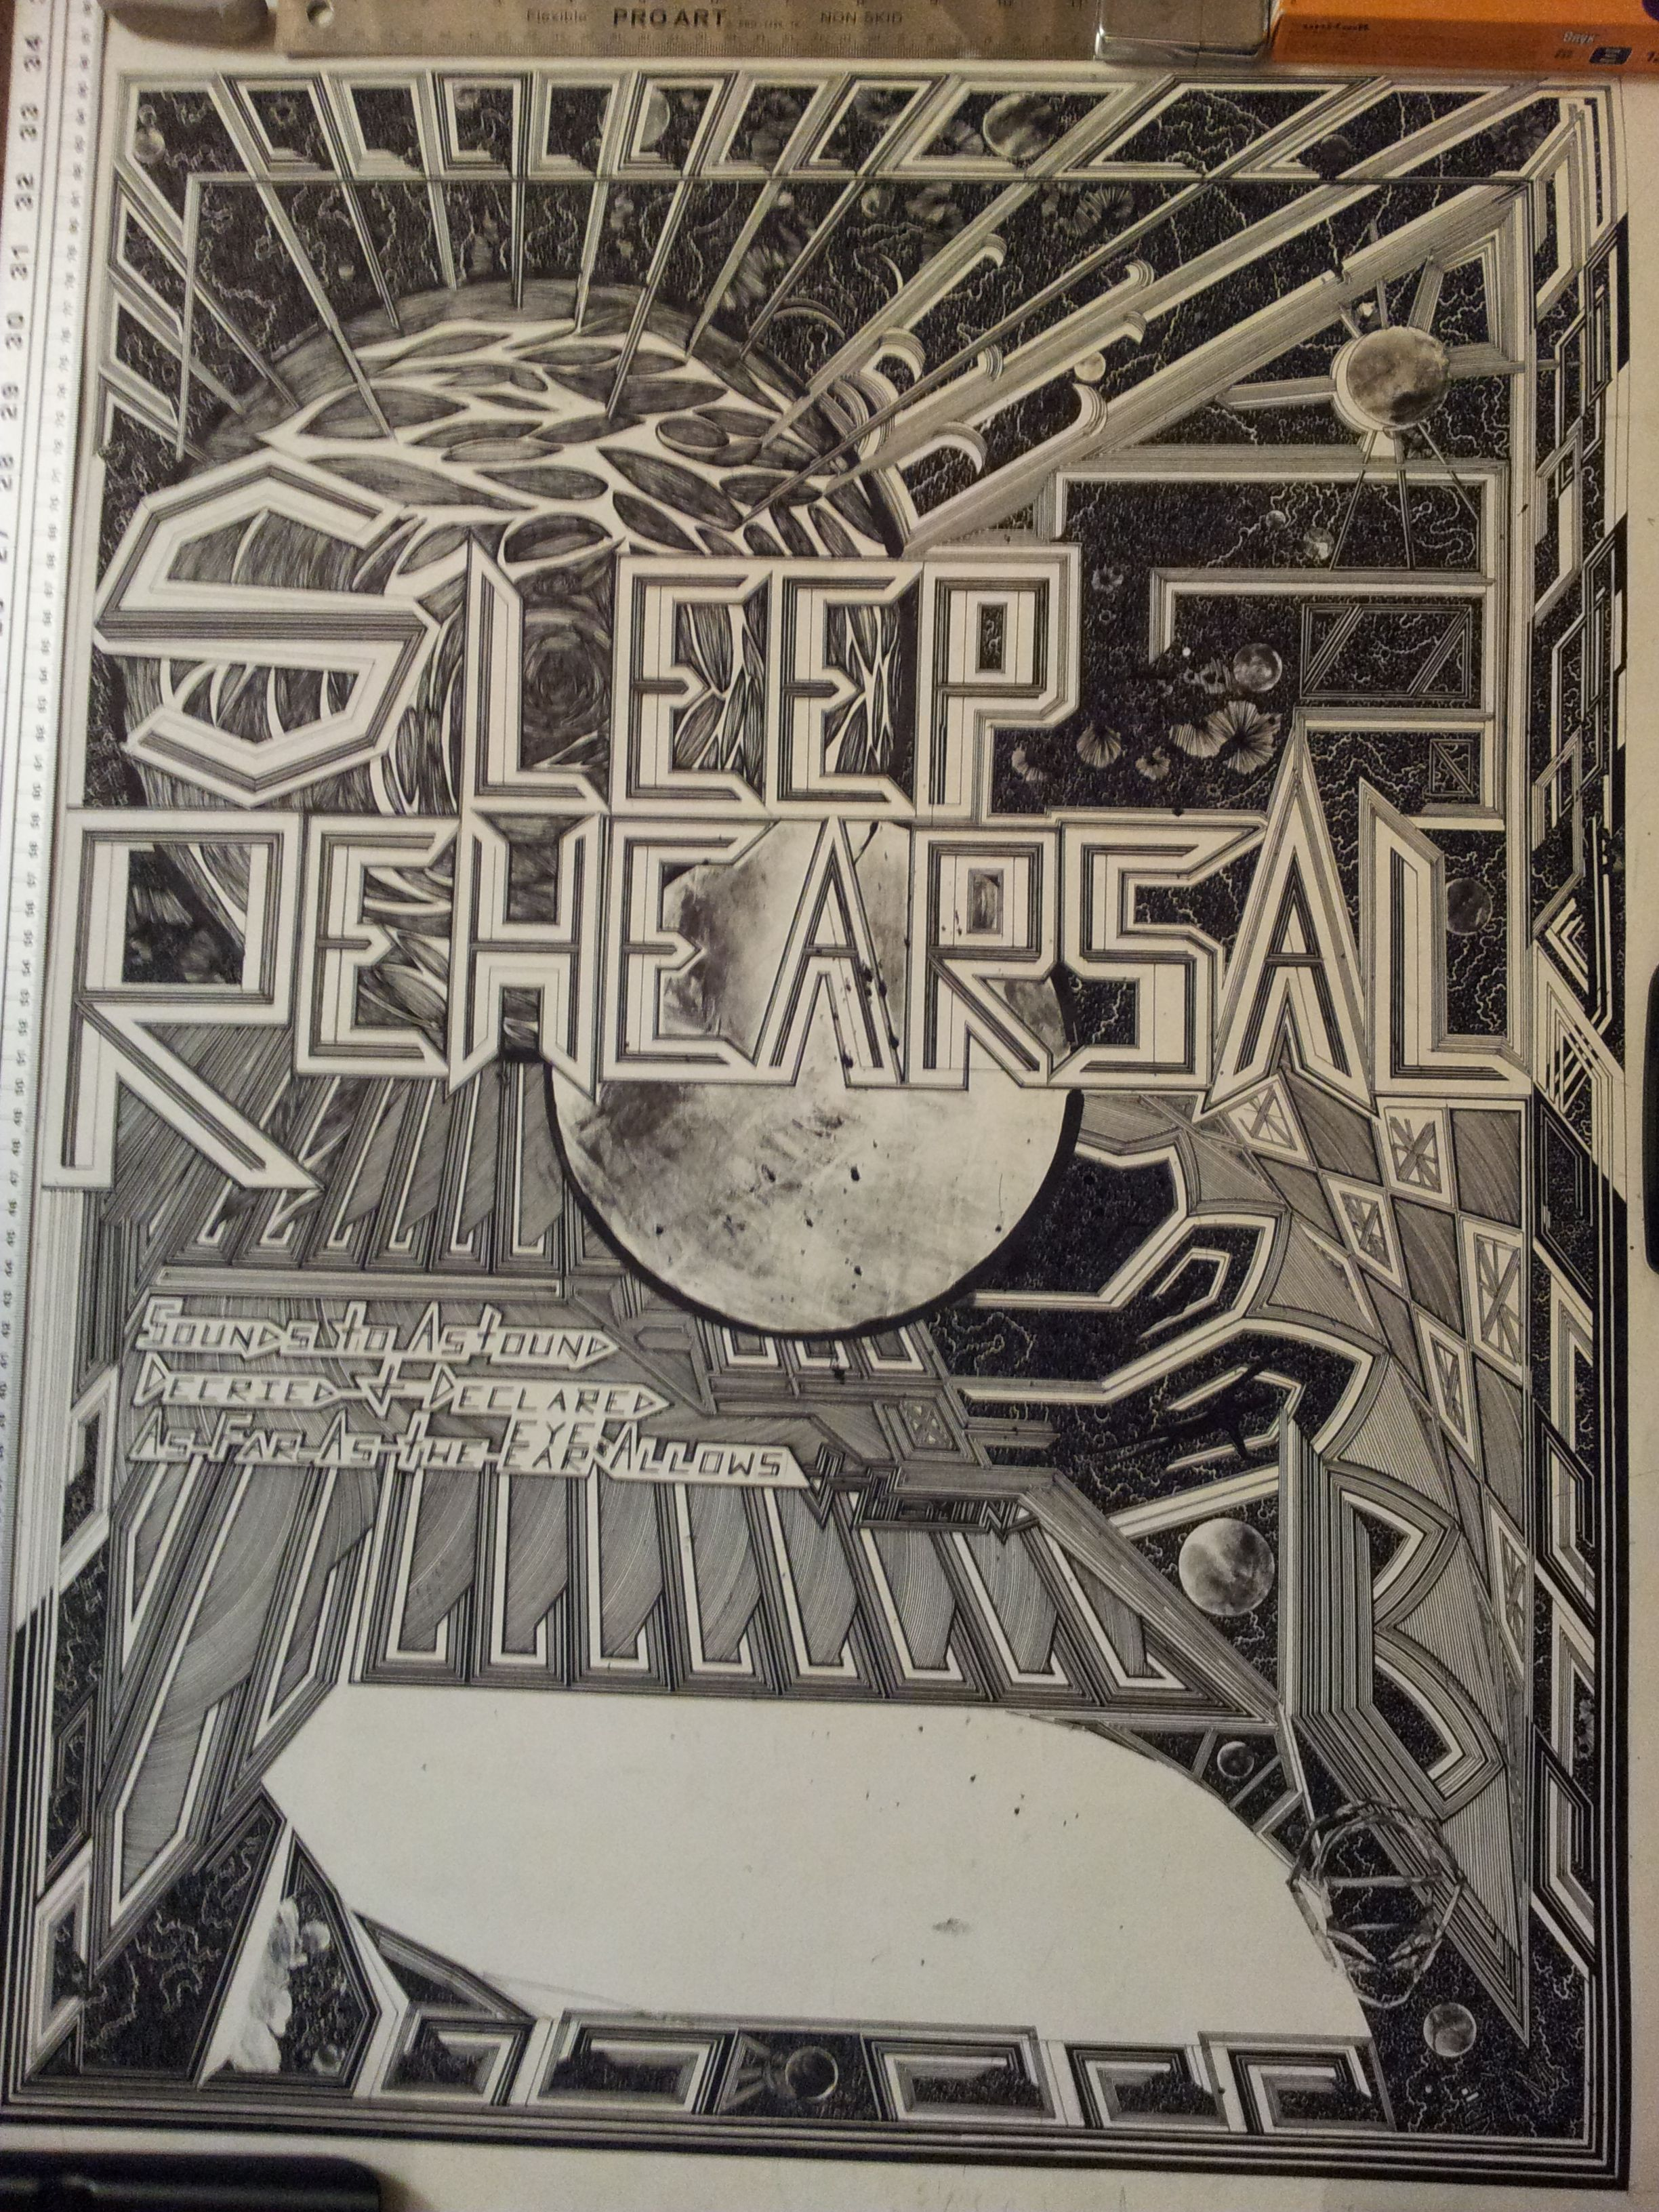 Finished concert poster for the band sleep rehearsal, time: 78 hours, 43min  i should've had it done earlier -____-  artist contact: spinswell@gmail.com  Sliding scale, ultra reasonable rates